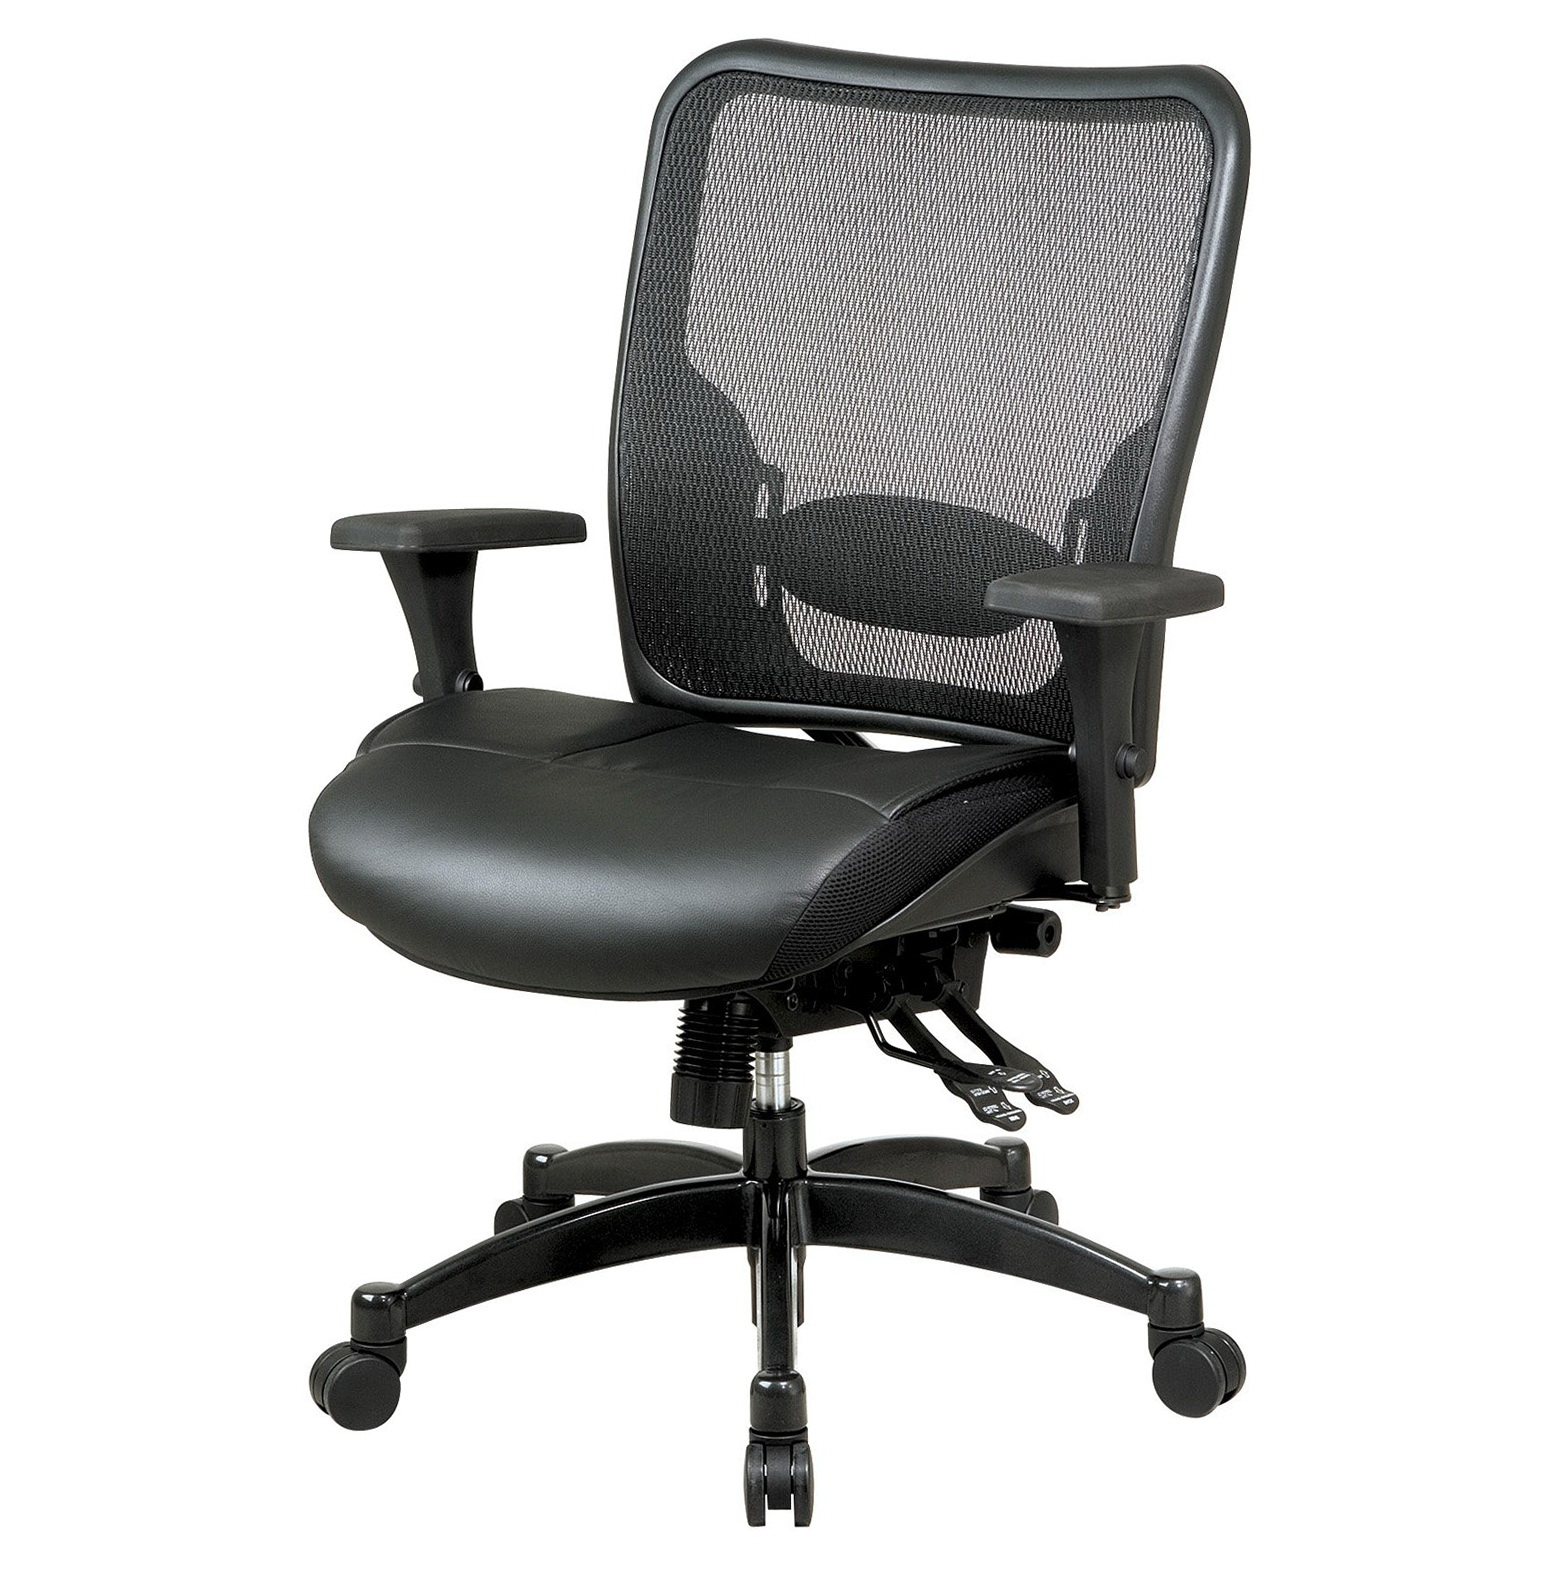 Back Cushion For Office Chair India  Home Design Ideas